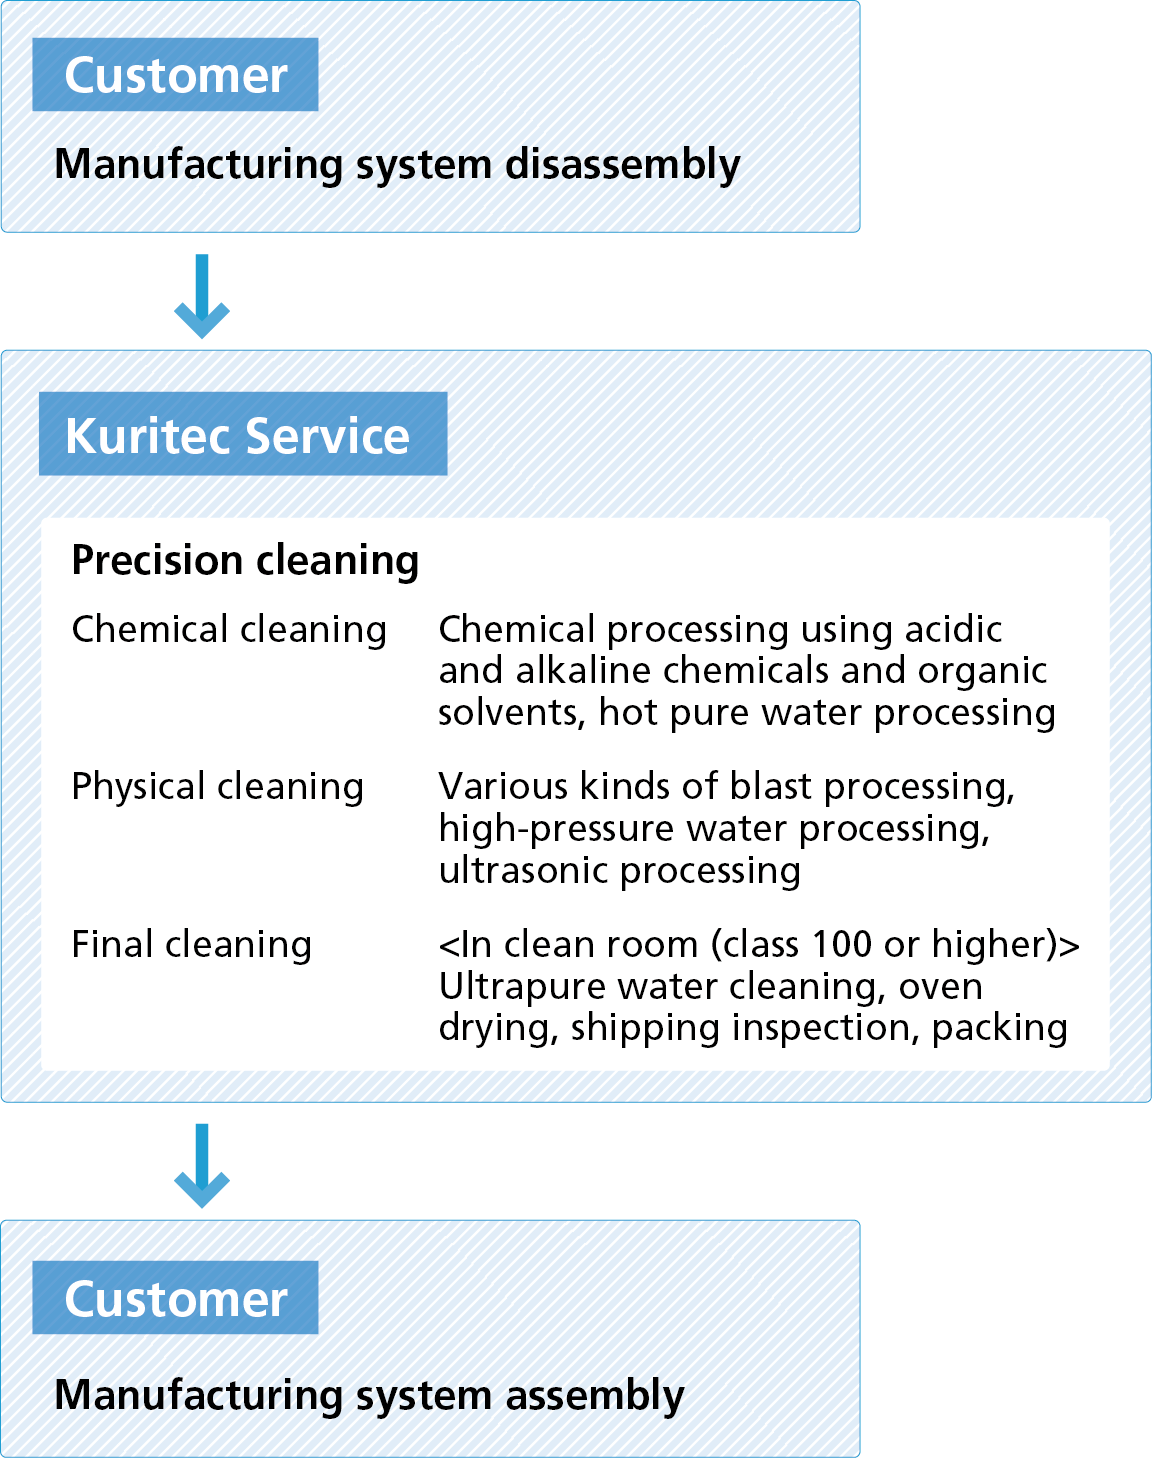 Example of precision cleaning workflow